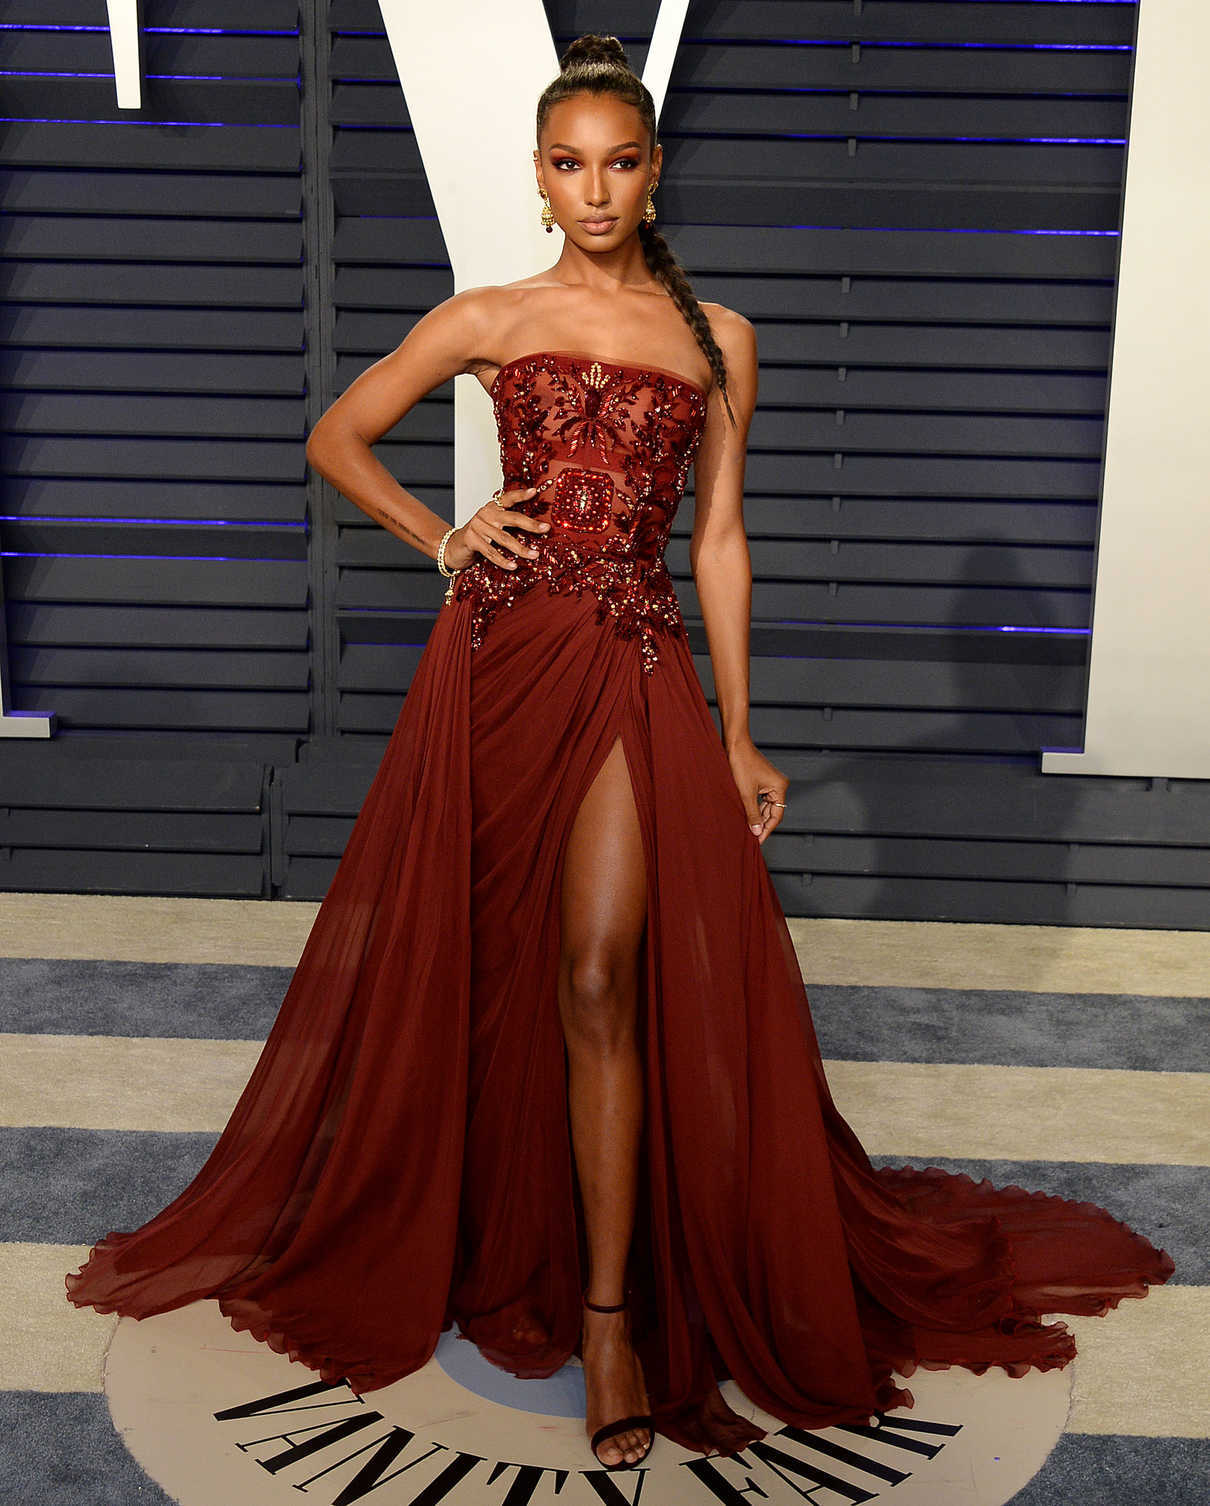 Jasmine Tookes Attends 2019 Vanity Fair Oscar Party In Beverly Hills 02 24 2019 Lacelebs Co